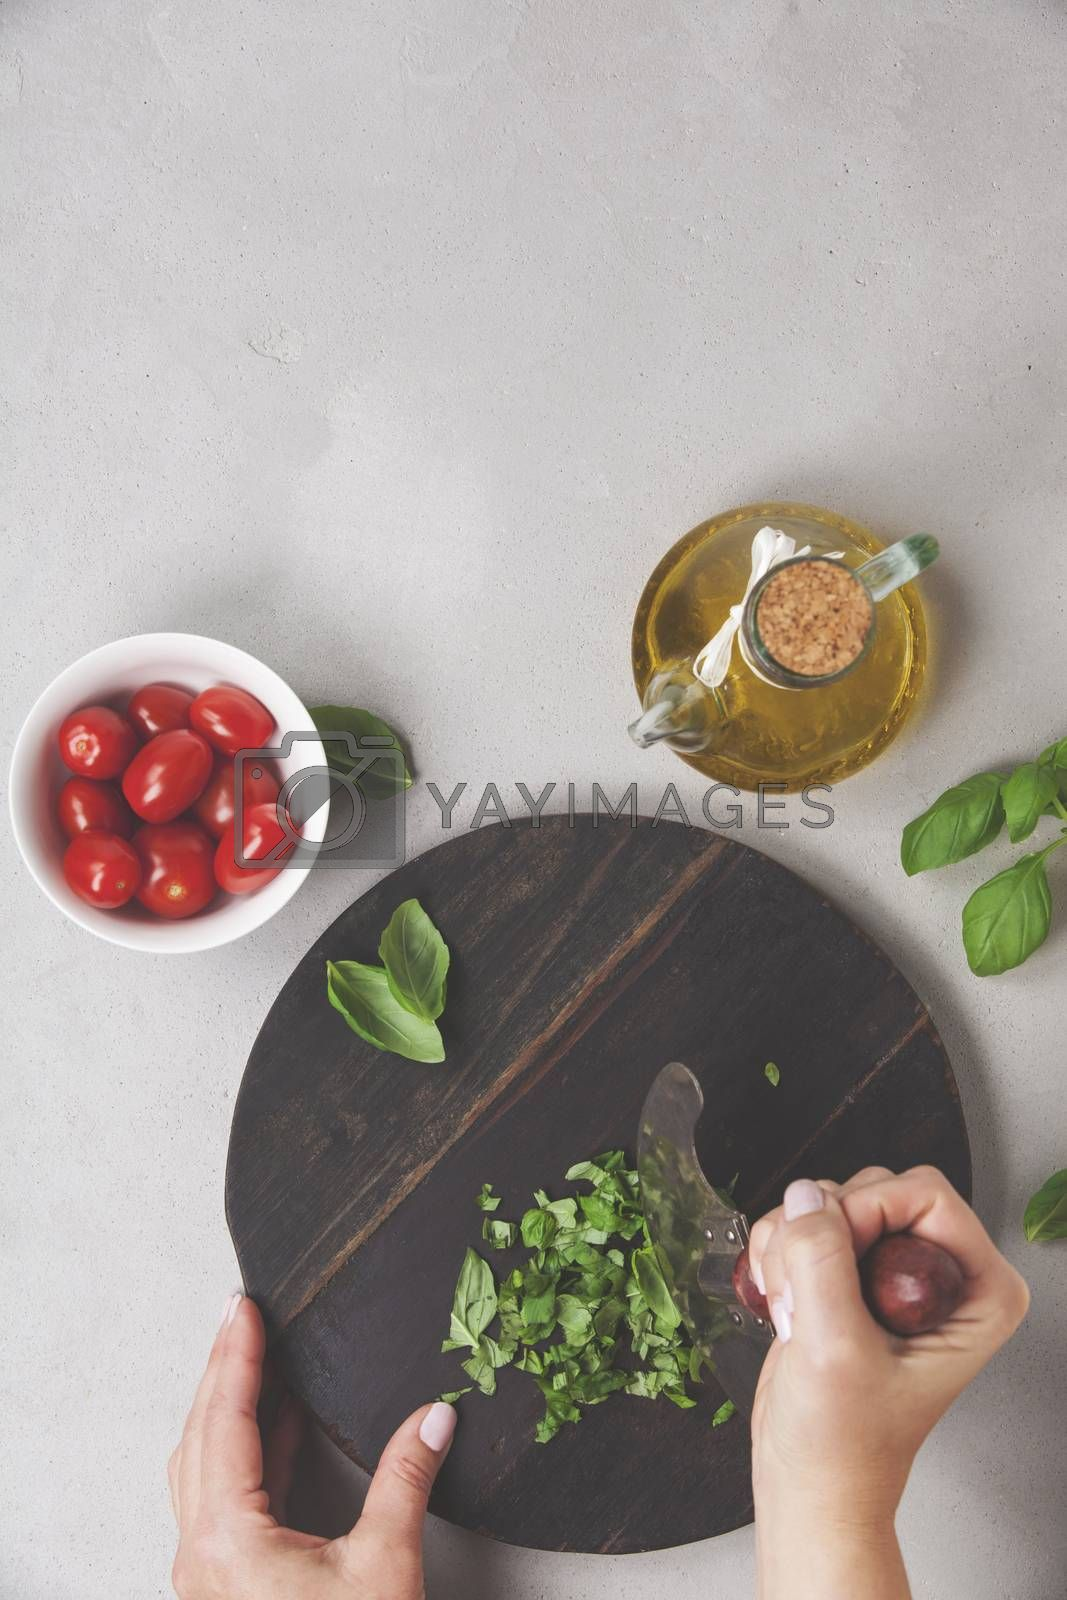 Hands of woman cooking italian food (tomato, basil, olive oil) on rustic background. Top view